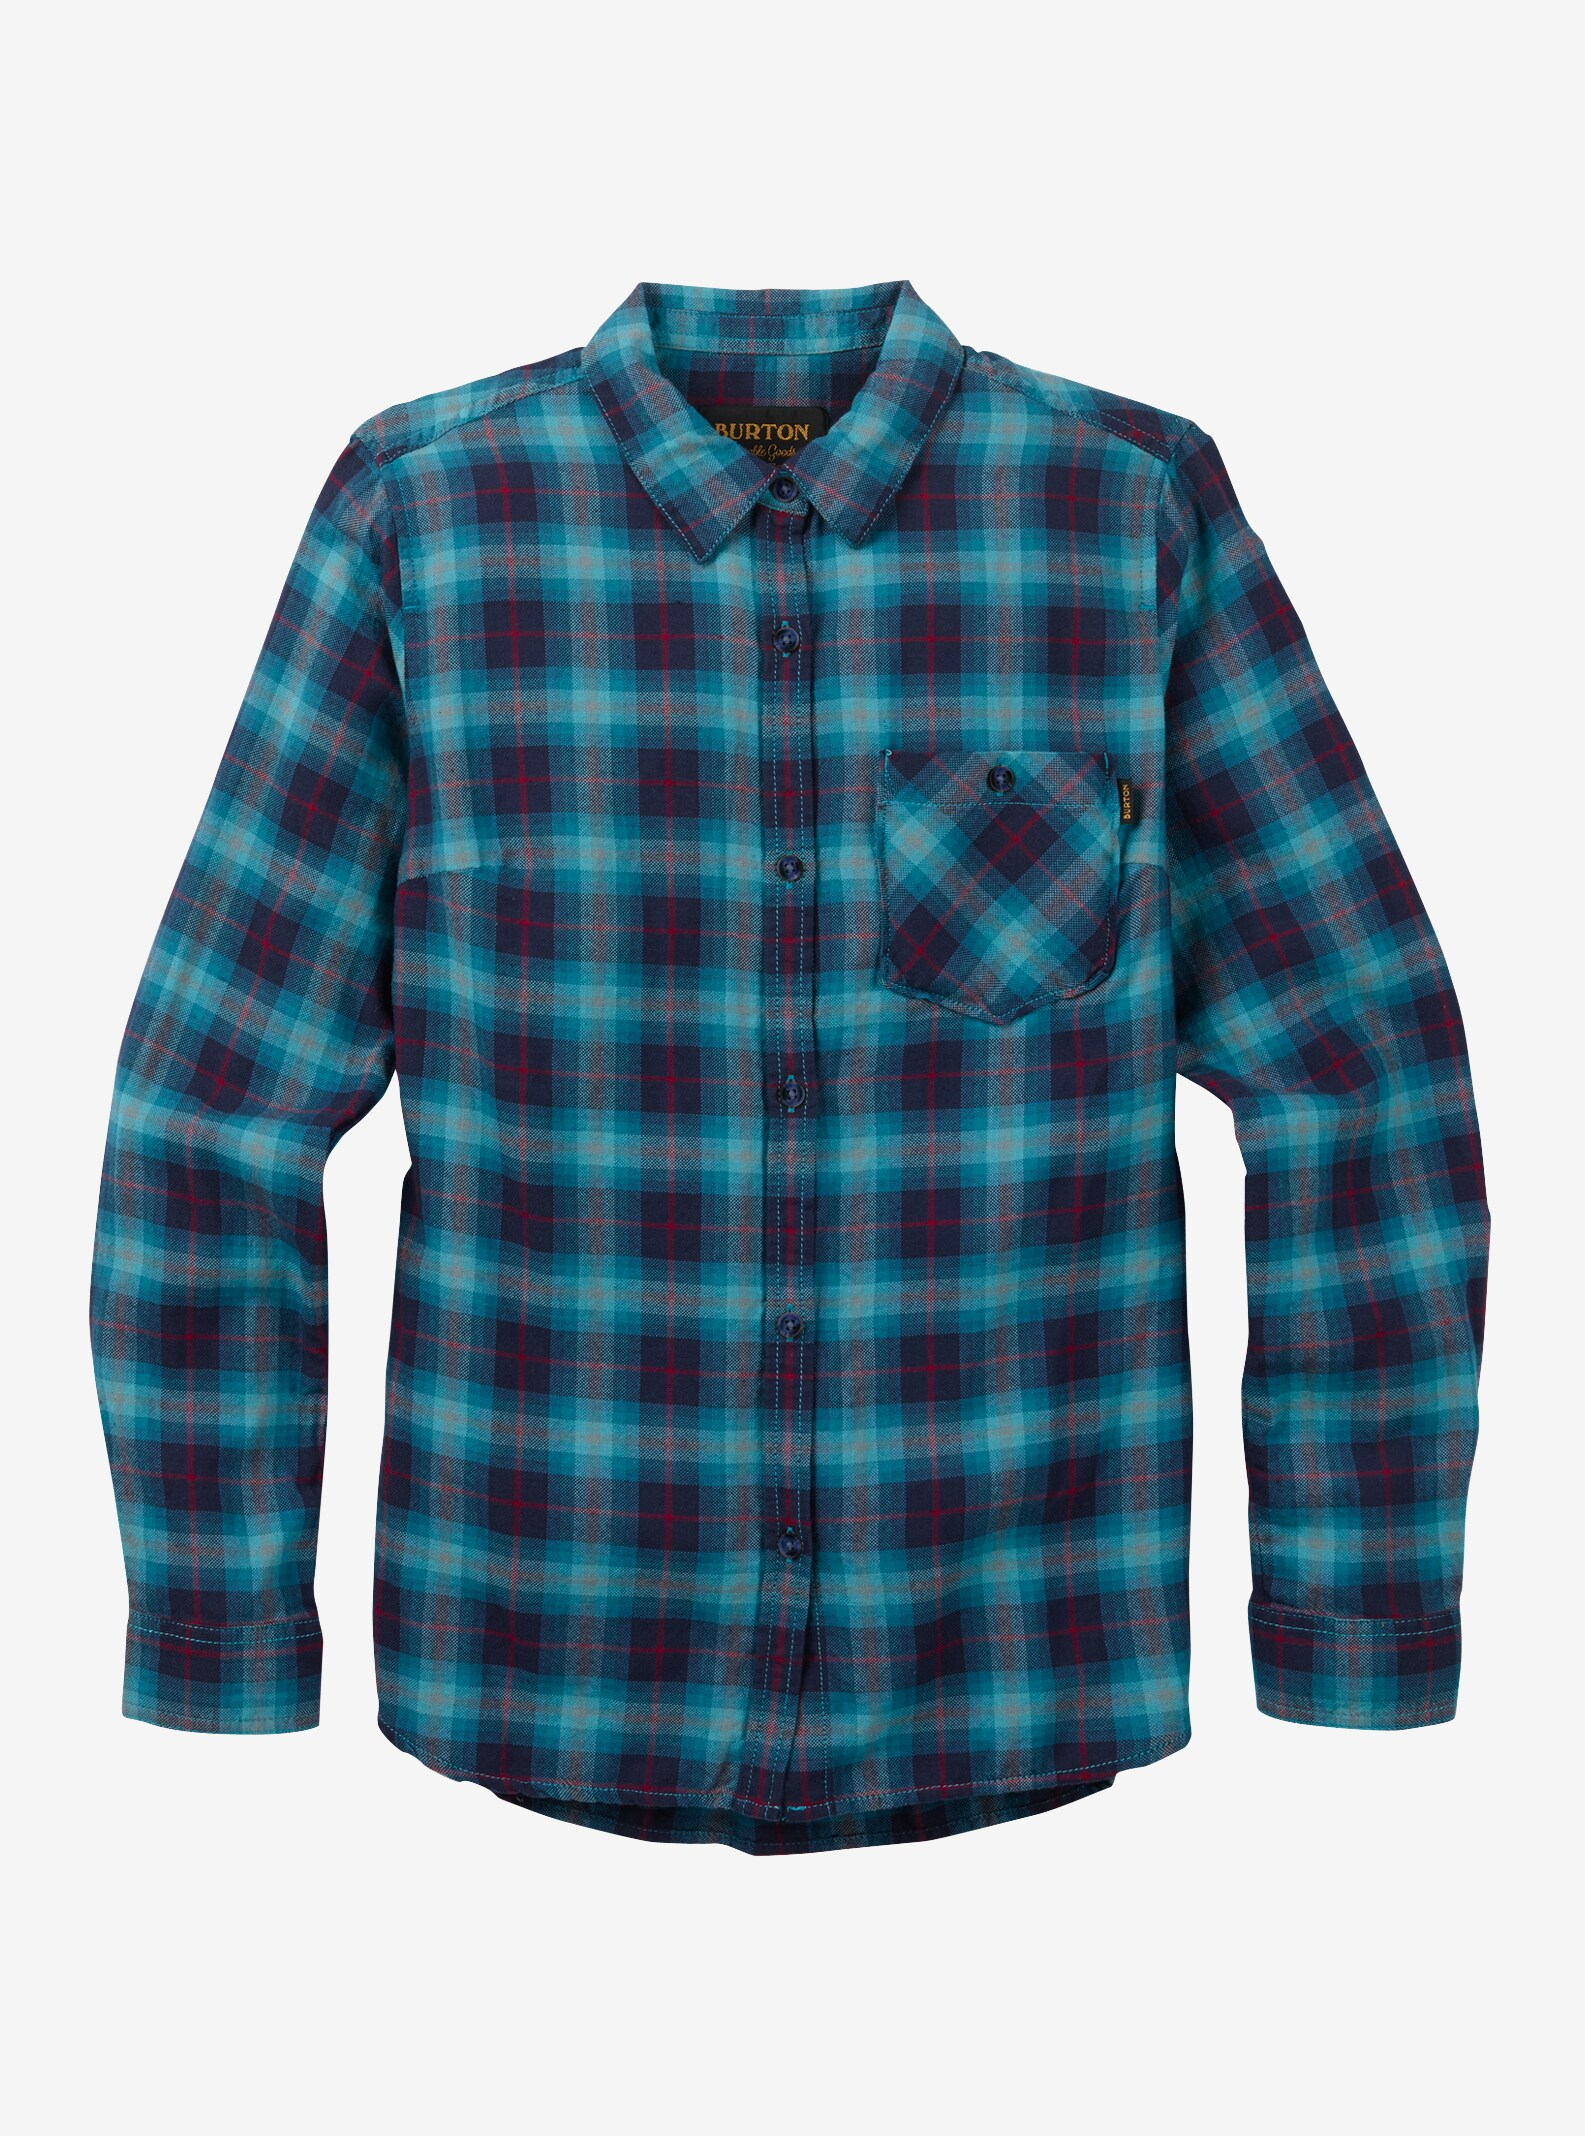 Women's Burton Grace Long Sleeve Woven shown in Jaded Haze Plaid